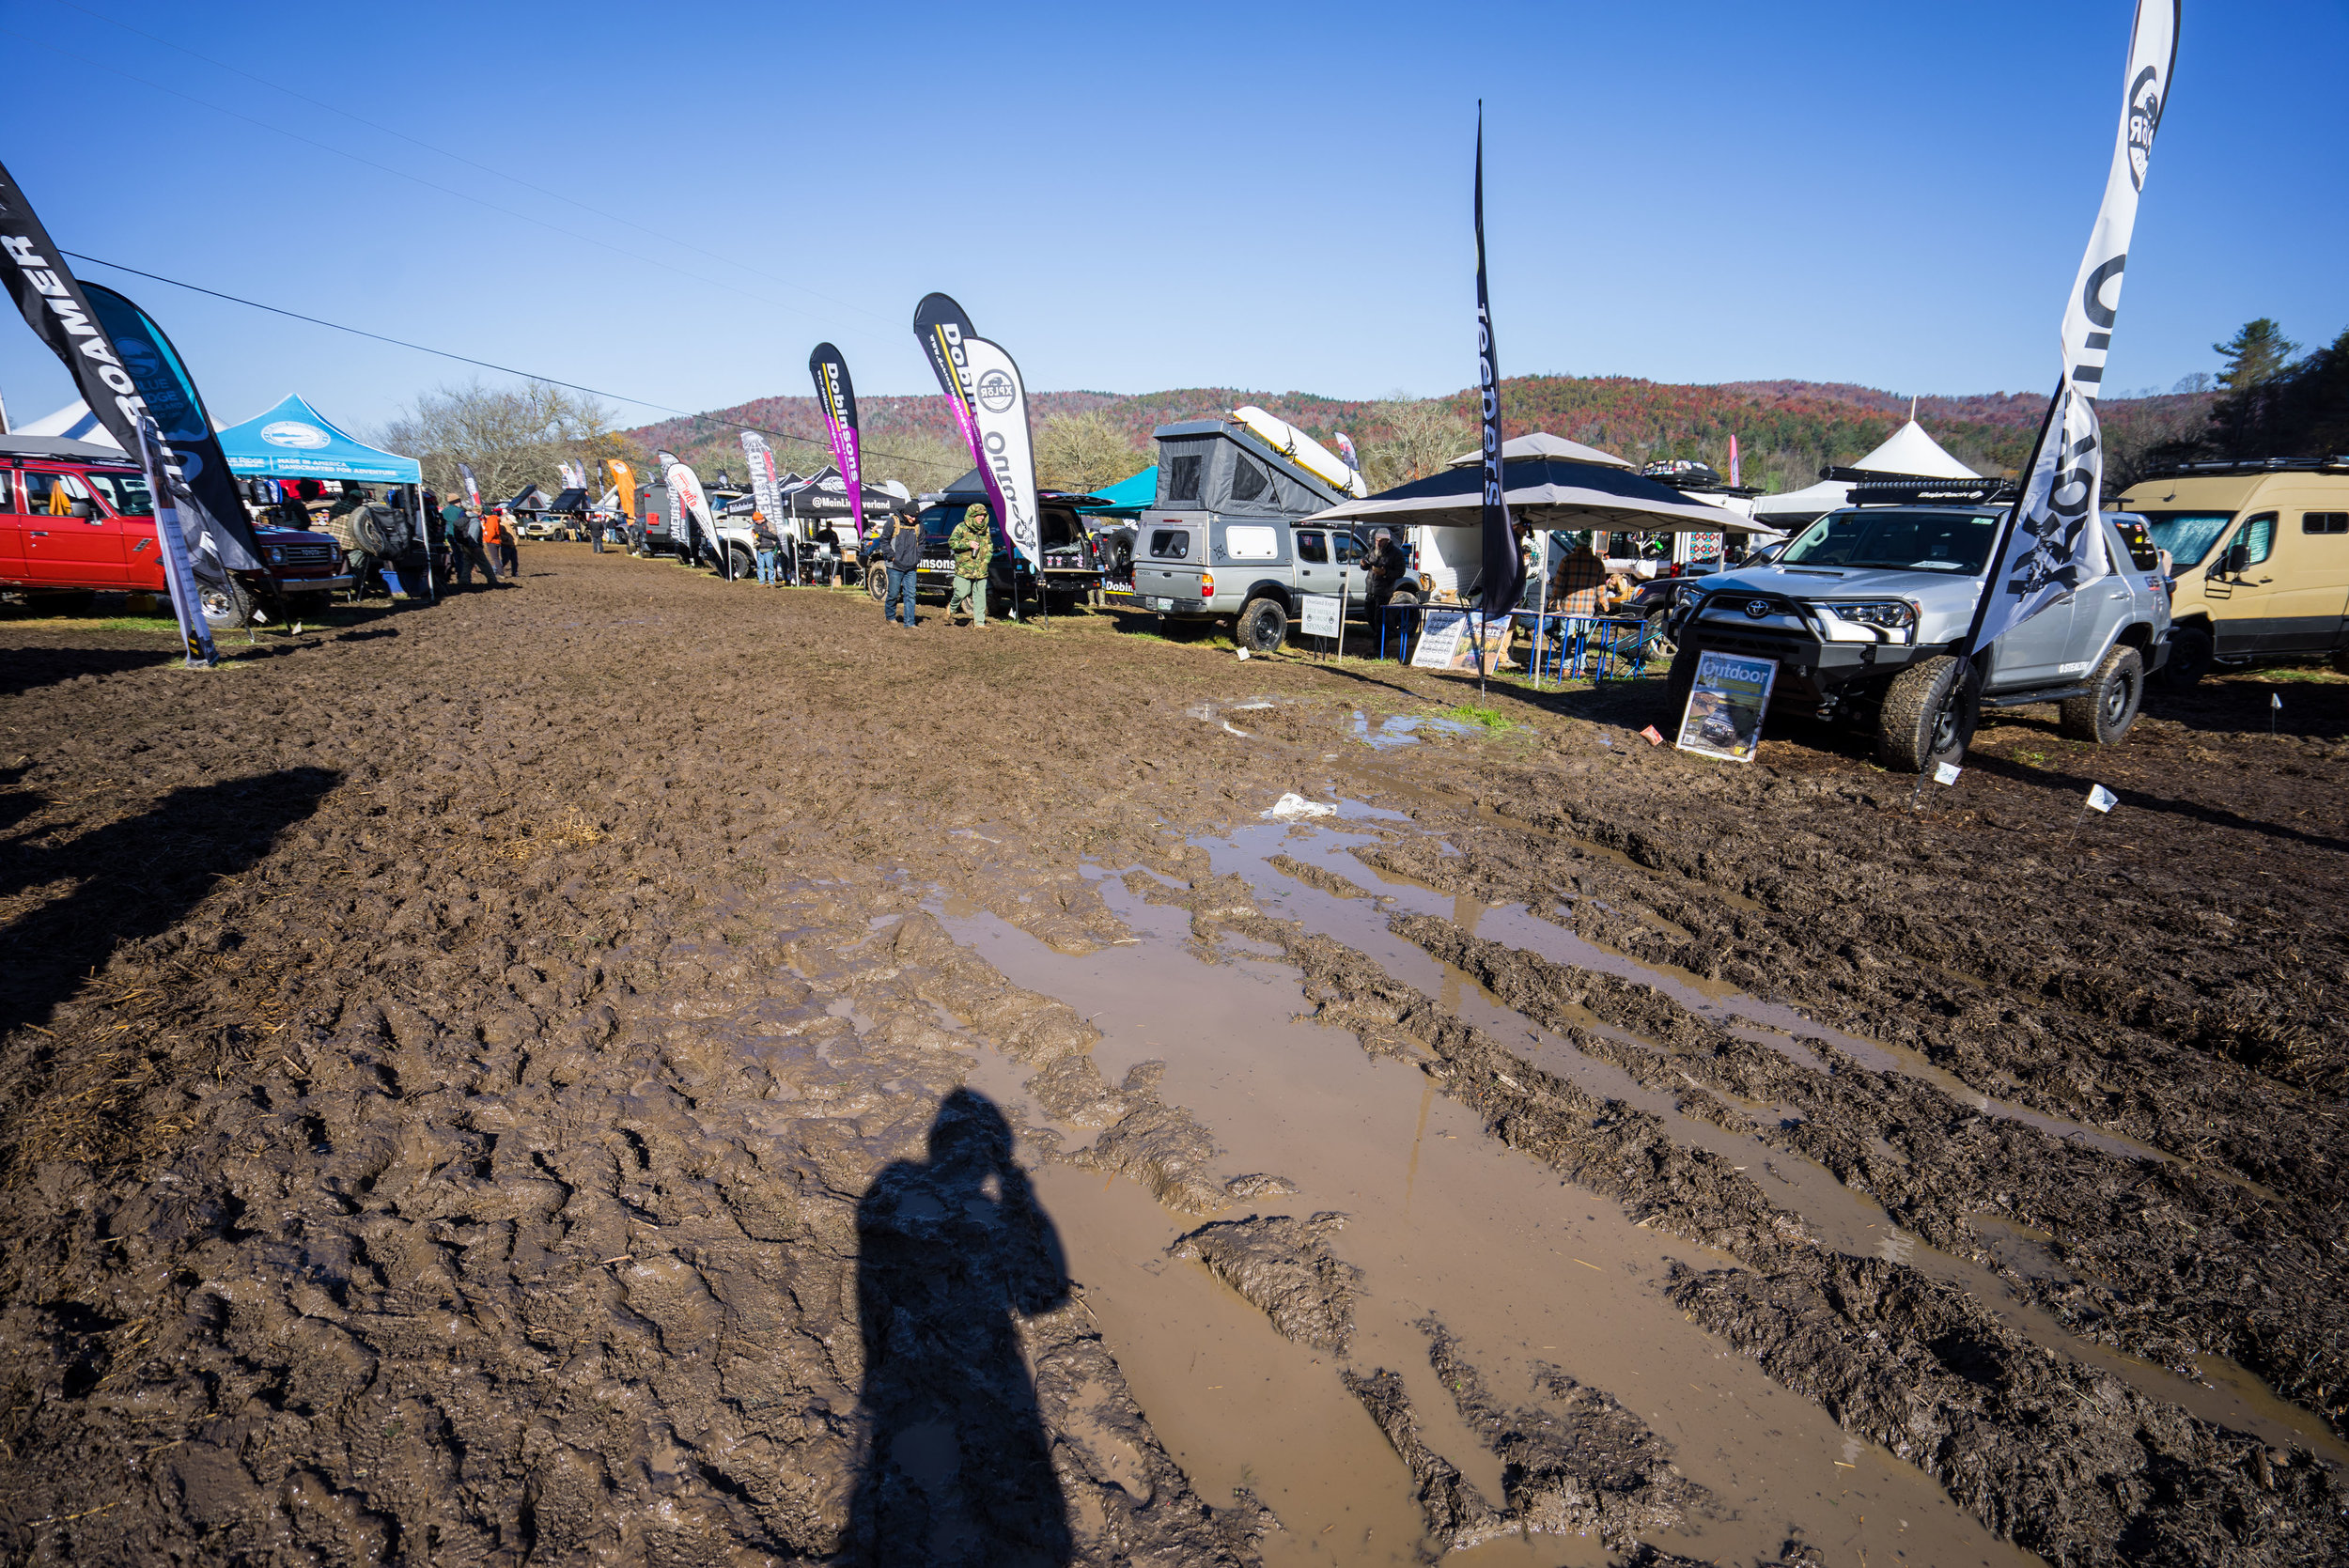 This is a small taste of the mud that we trudged through at Expo East